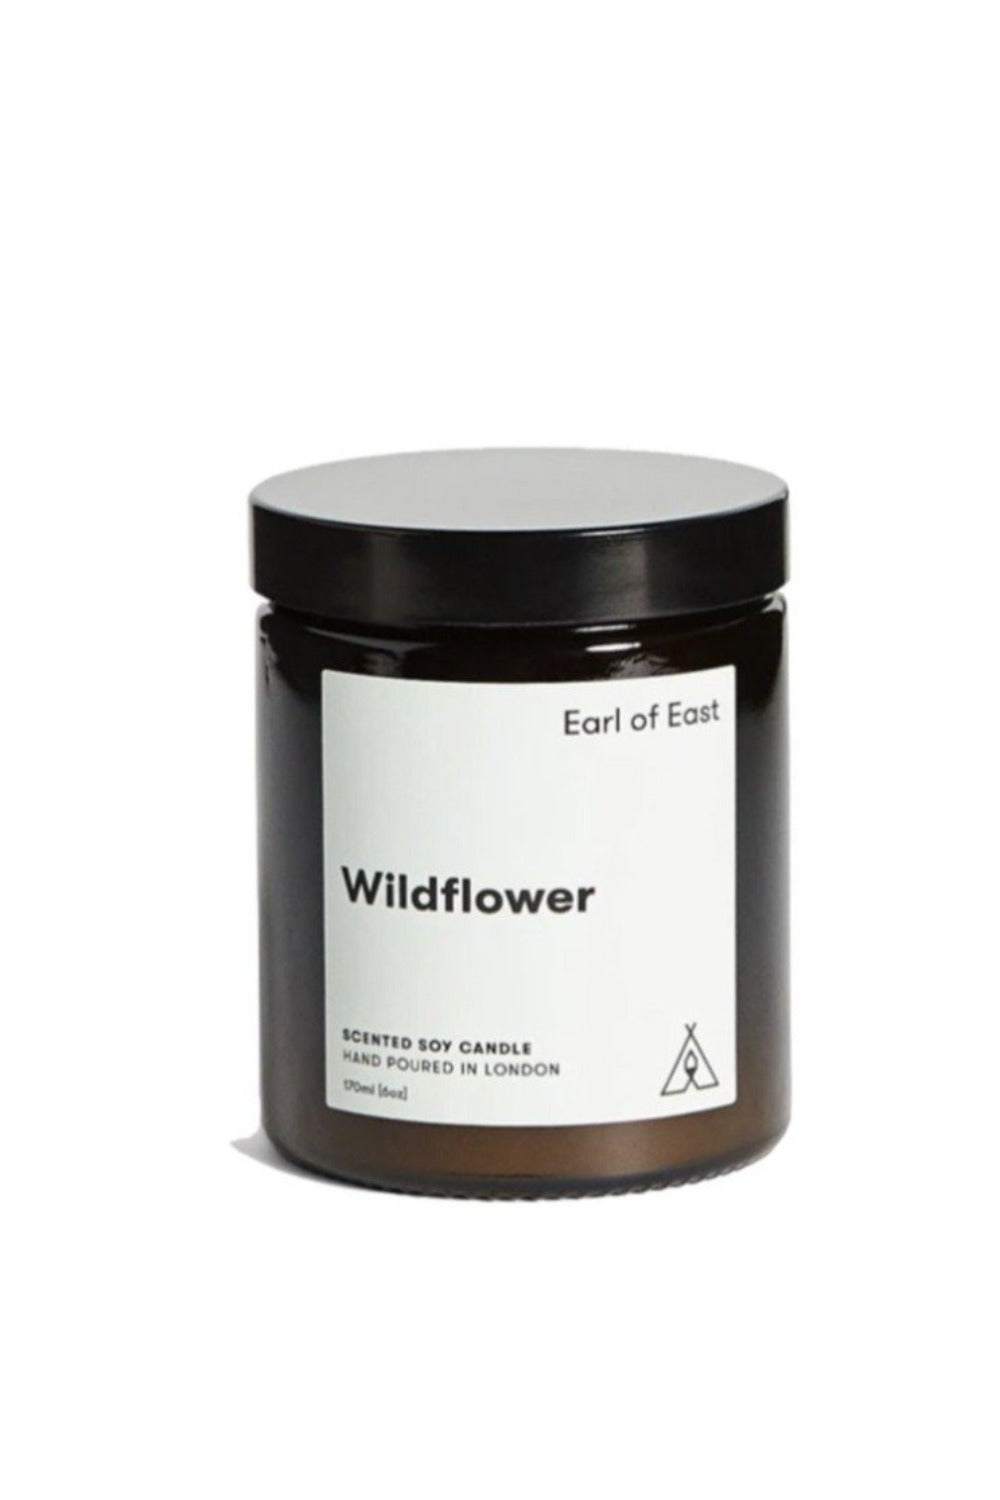 Wildflower Soy Wax Candle Candles Earl of East London